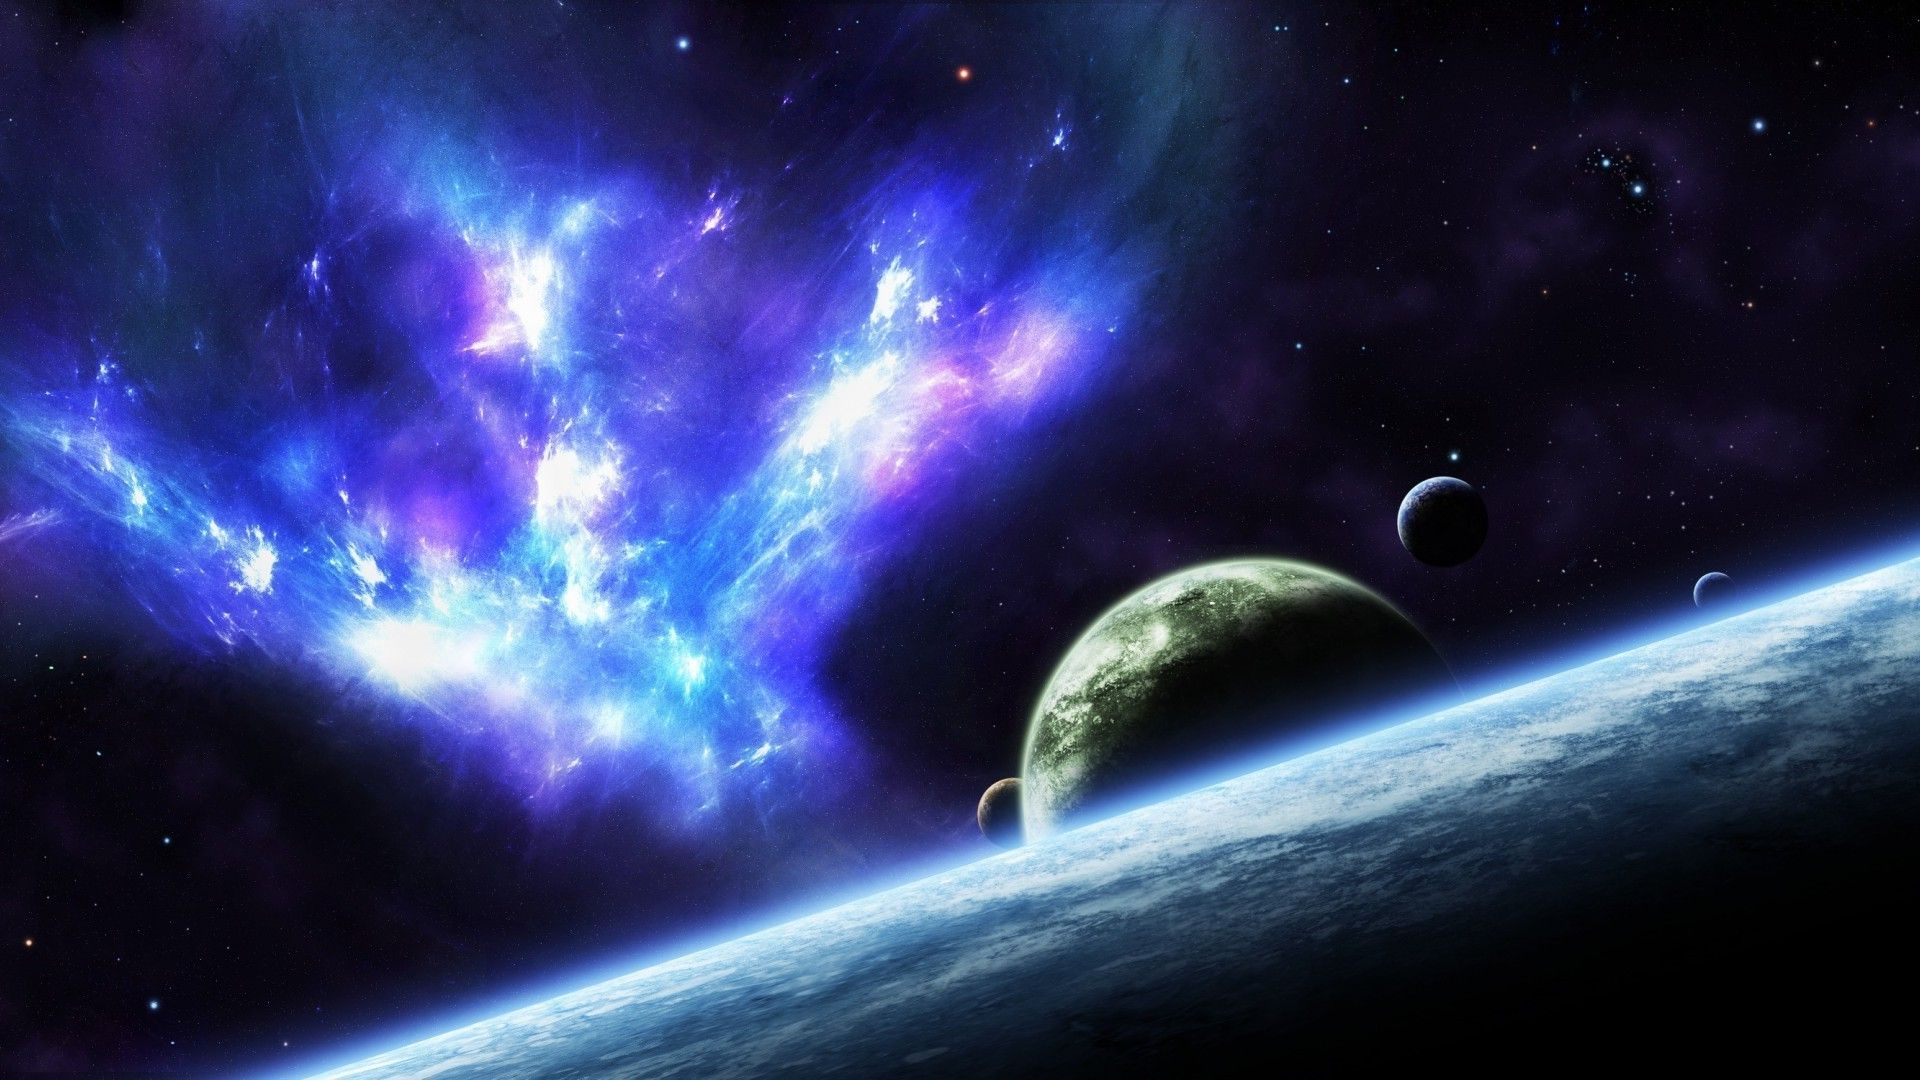 Outer Space download wallpaper image